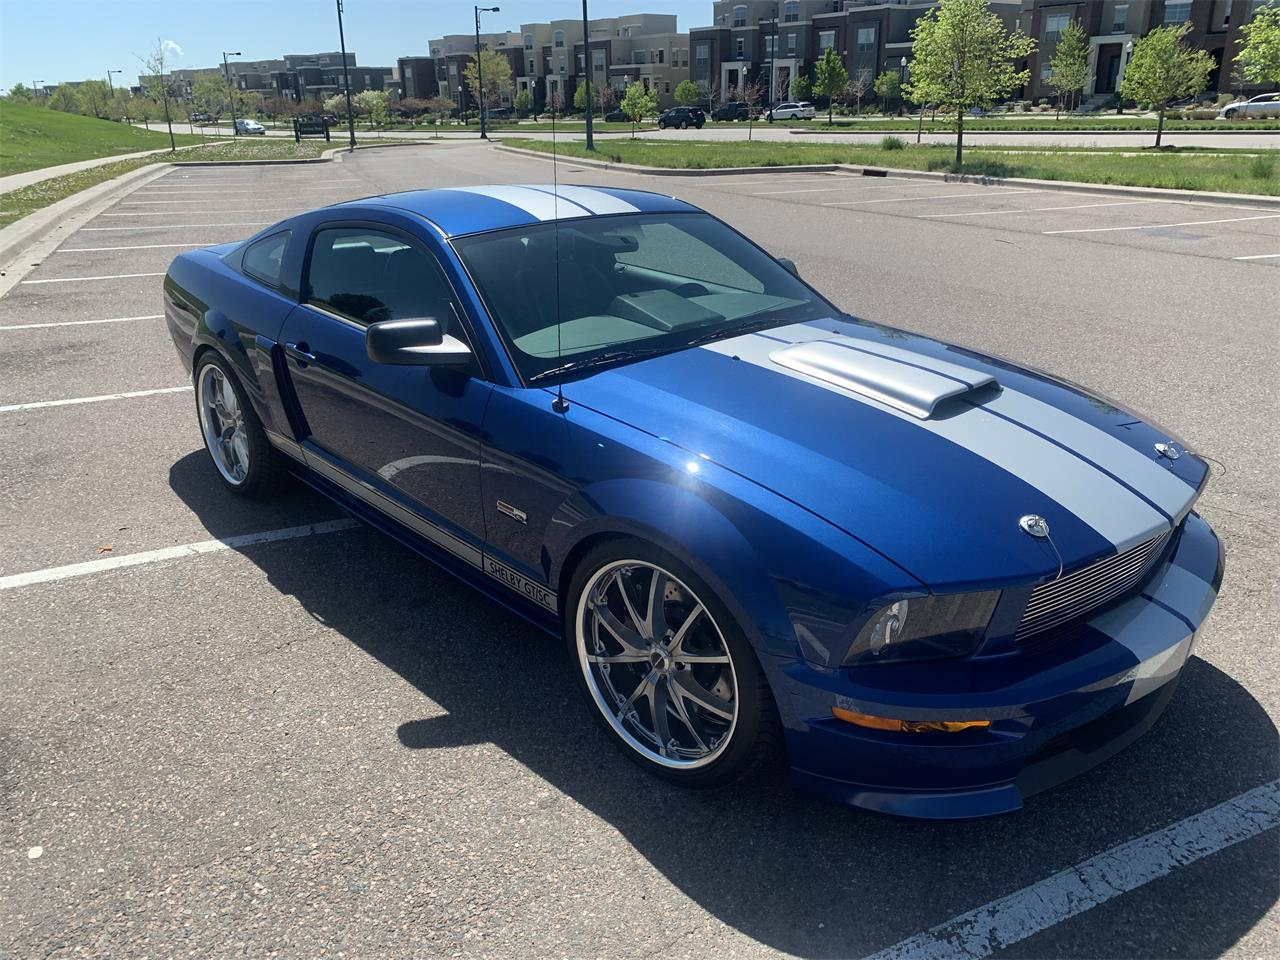 Large Picture of '08 Mustang located in Colorado - $50,000.00 Offered by a Private Seller - P3GN